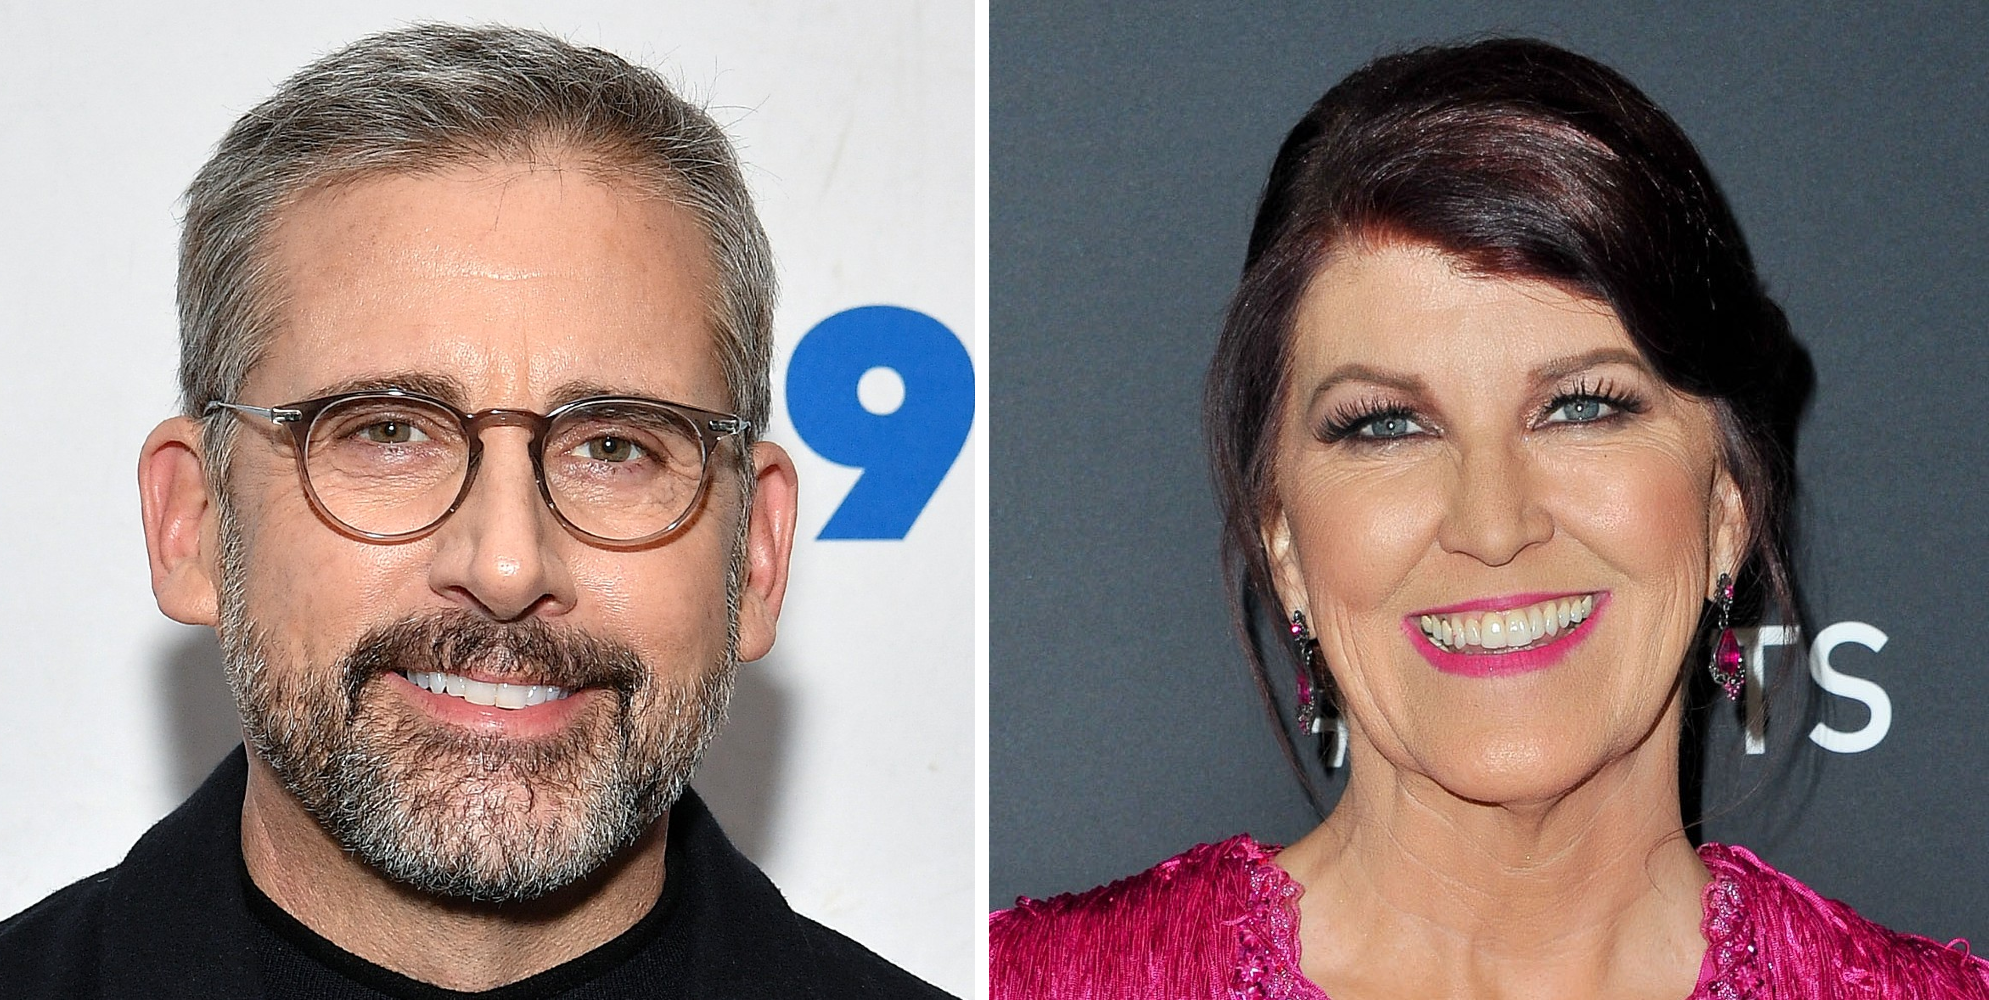 Steve Carell Says Former 'Office' Co-Star Kate Flannery Will 'Take the Whole Thing' On 'DWTS'